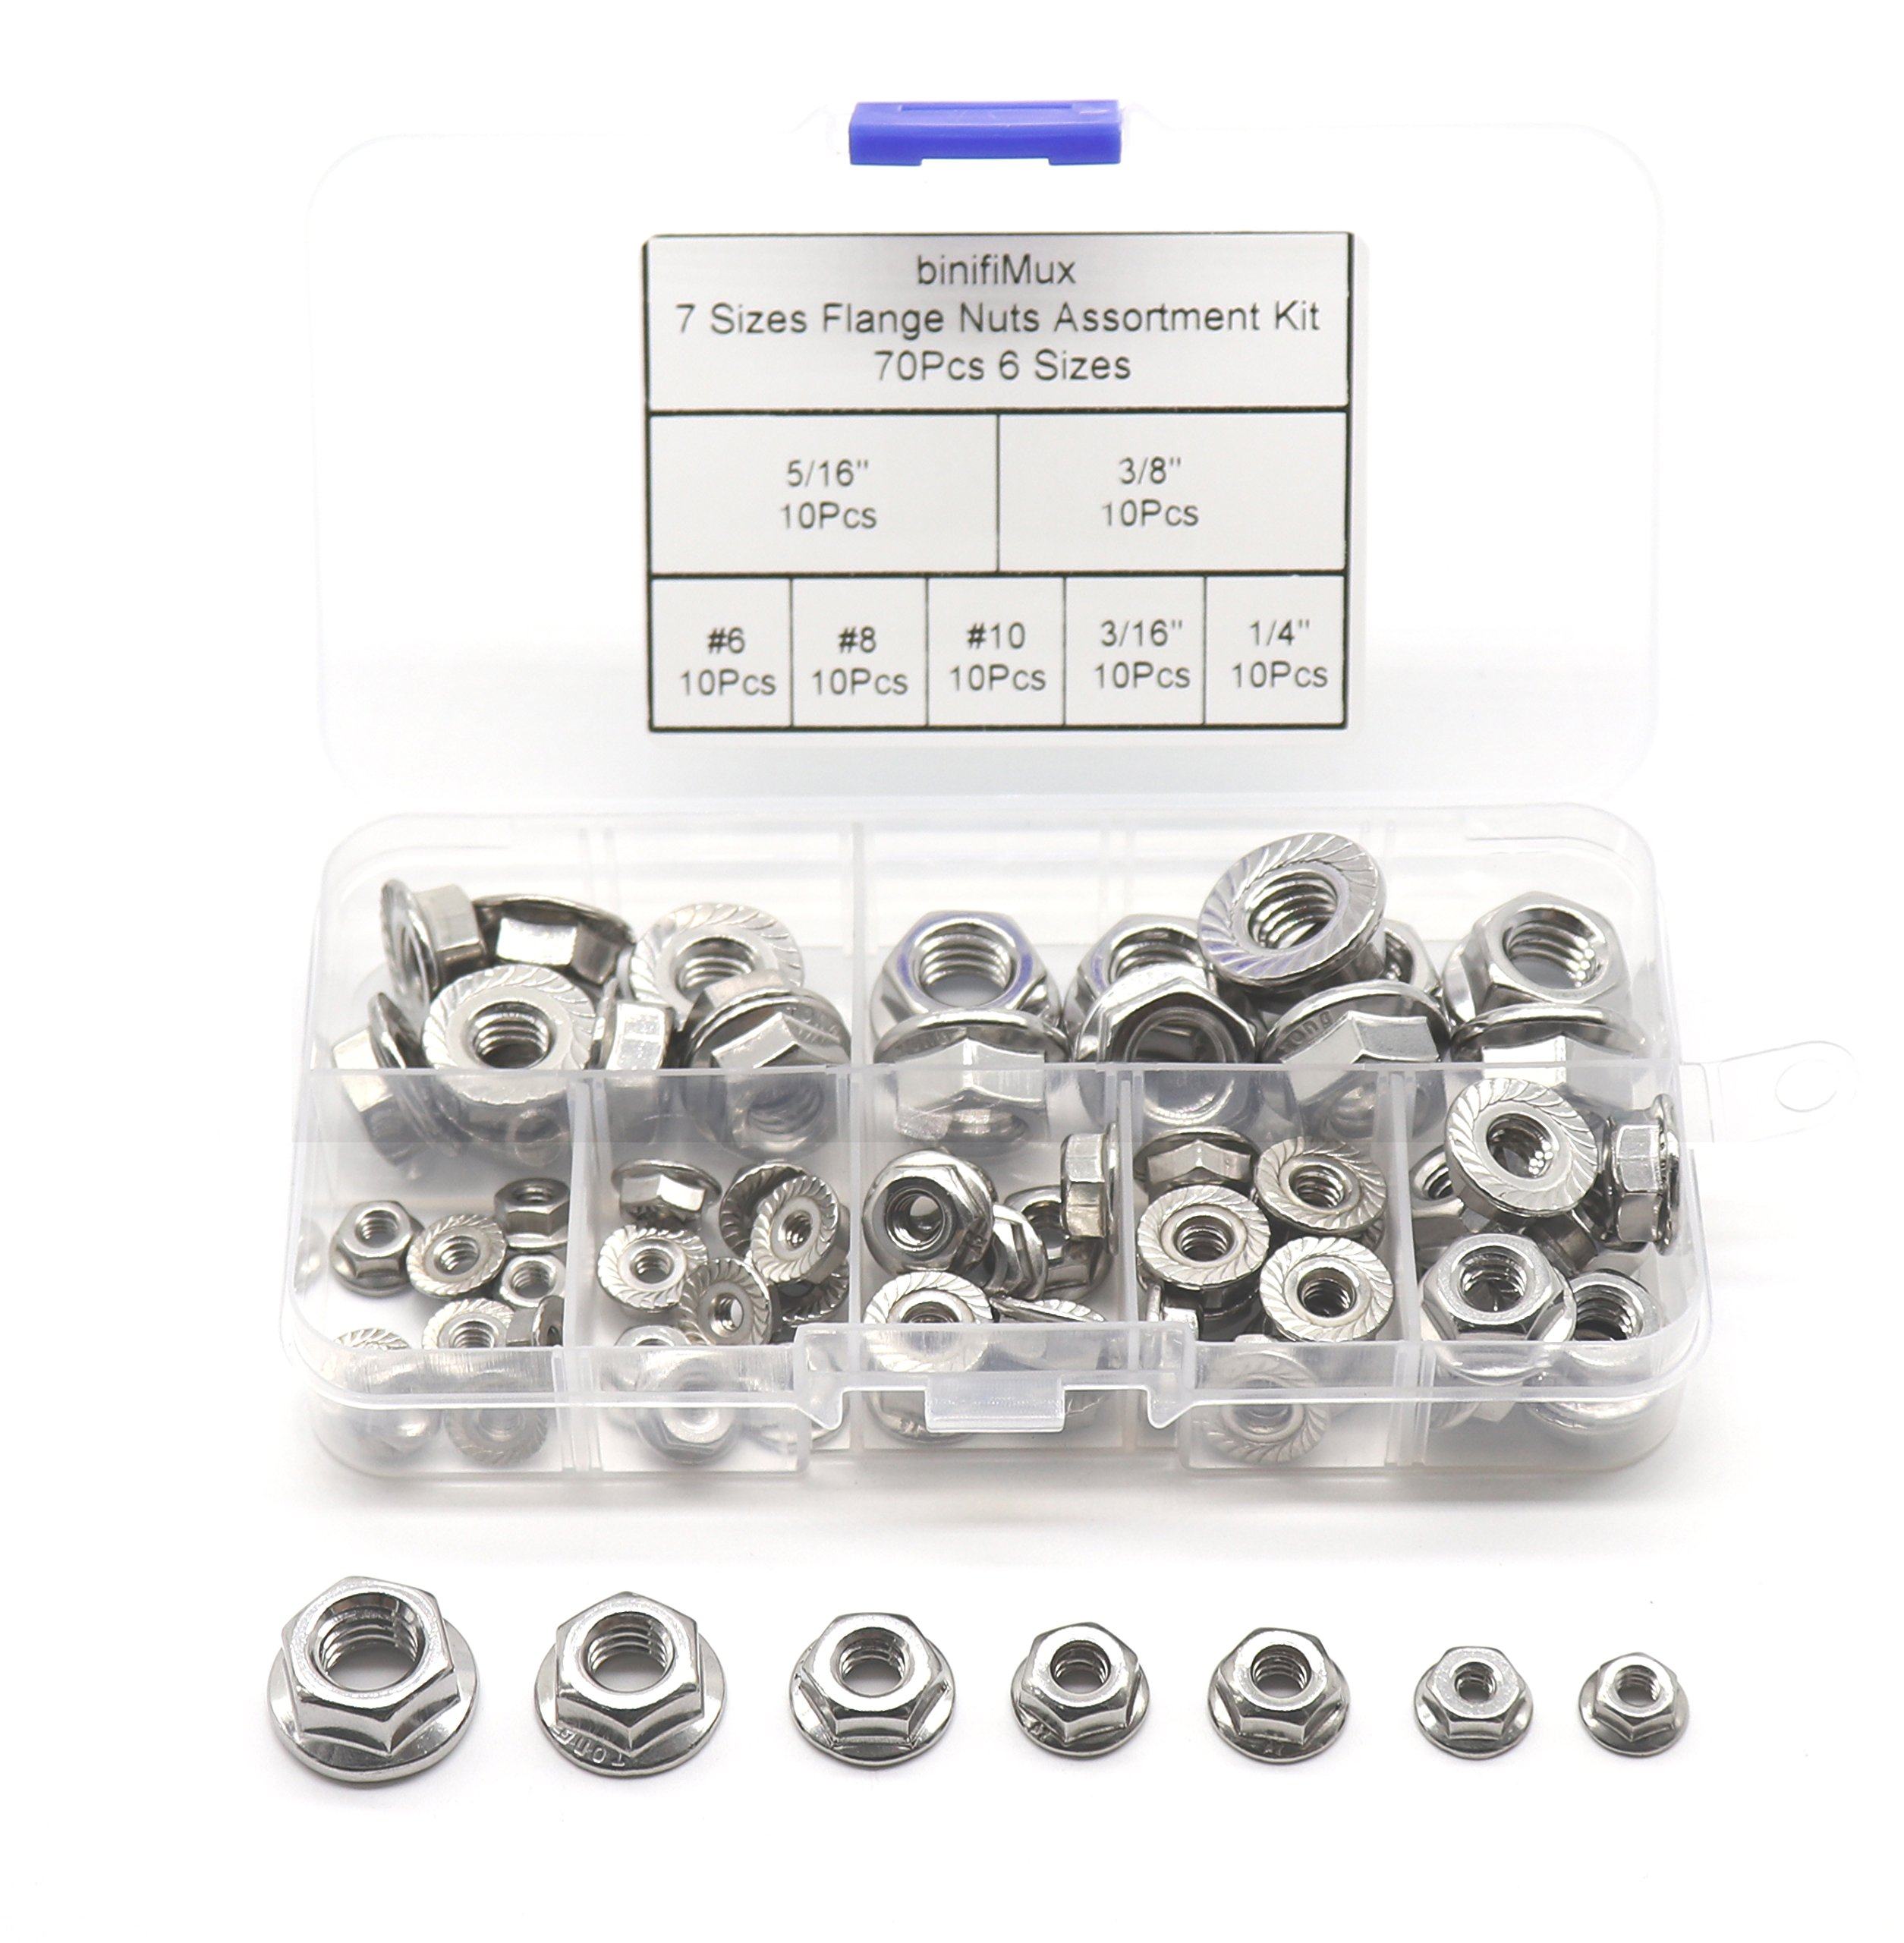 "binifiMux 70Pcs Hexagon Flange Nuts Assortment Kit(7 Sizes), 304 Stainless Steel #6#8#10, 3/16"" 1/4"" 5/16"" 3/8"""